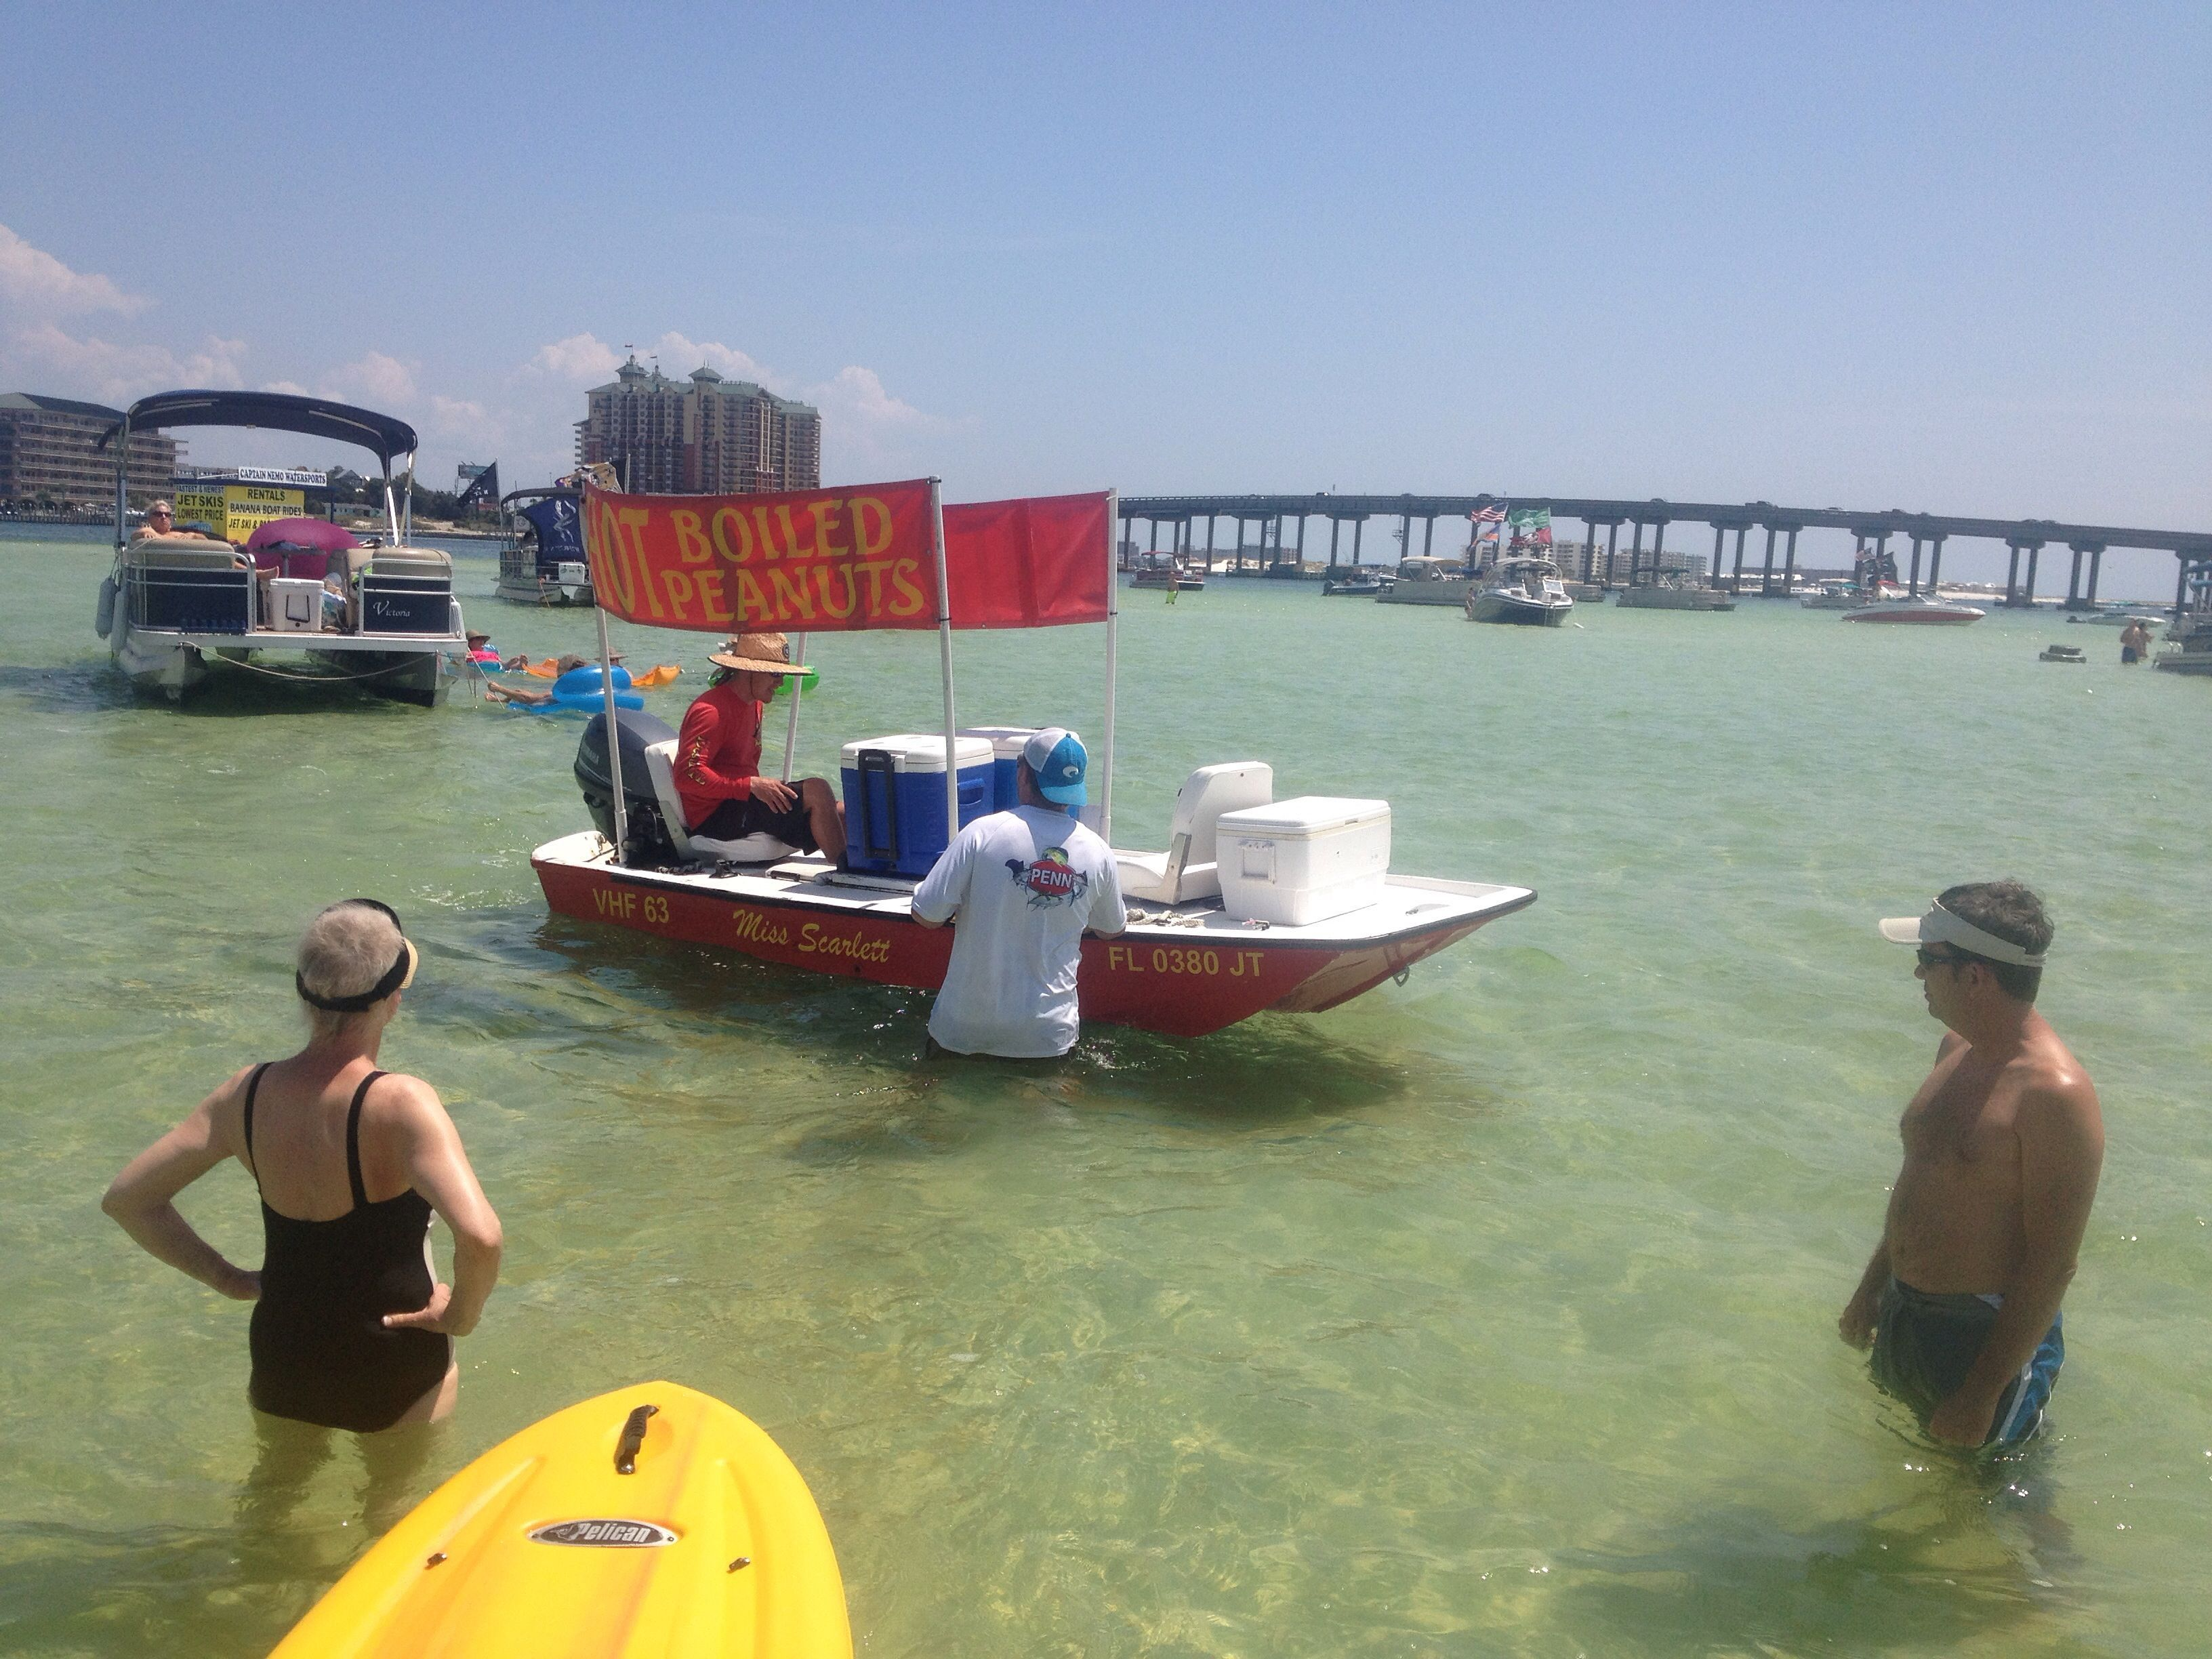 Boiled peanut food vendor comes to you by boat on crab